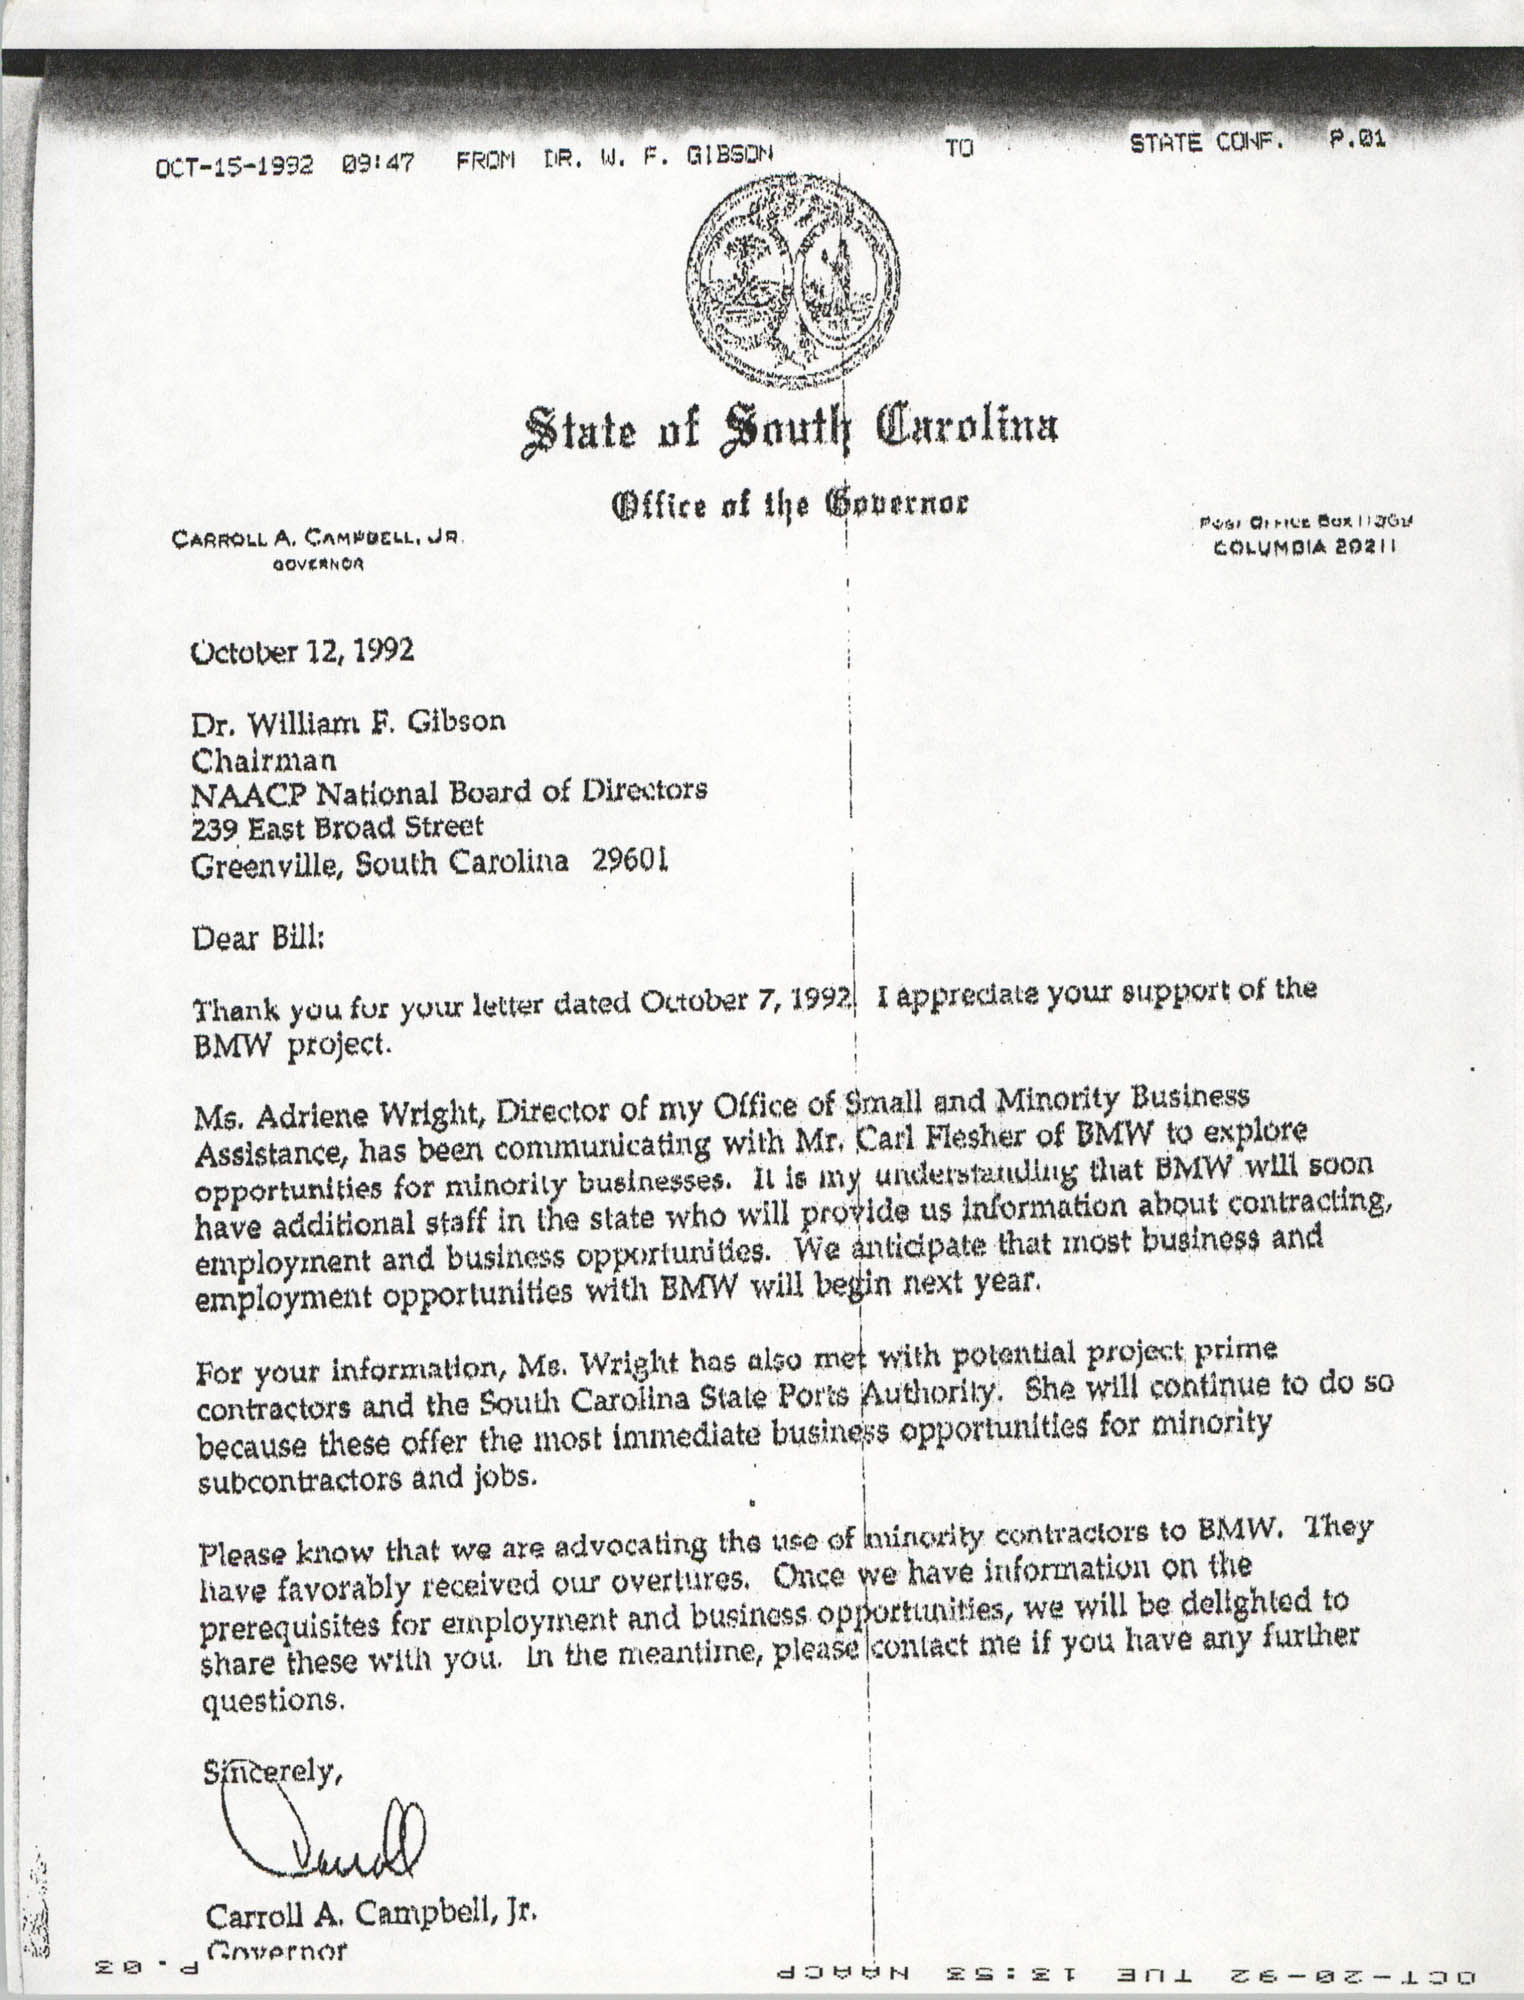 Letter from Carroll A. Campbell, Jr. to William F. Gibson, October 12, 1992